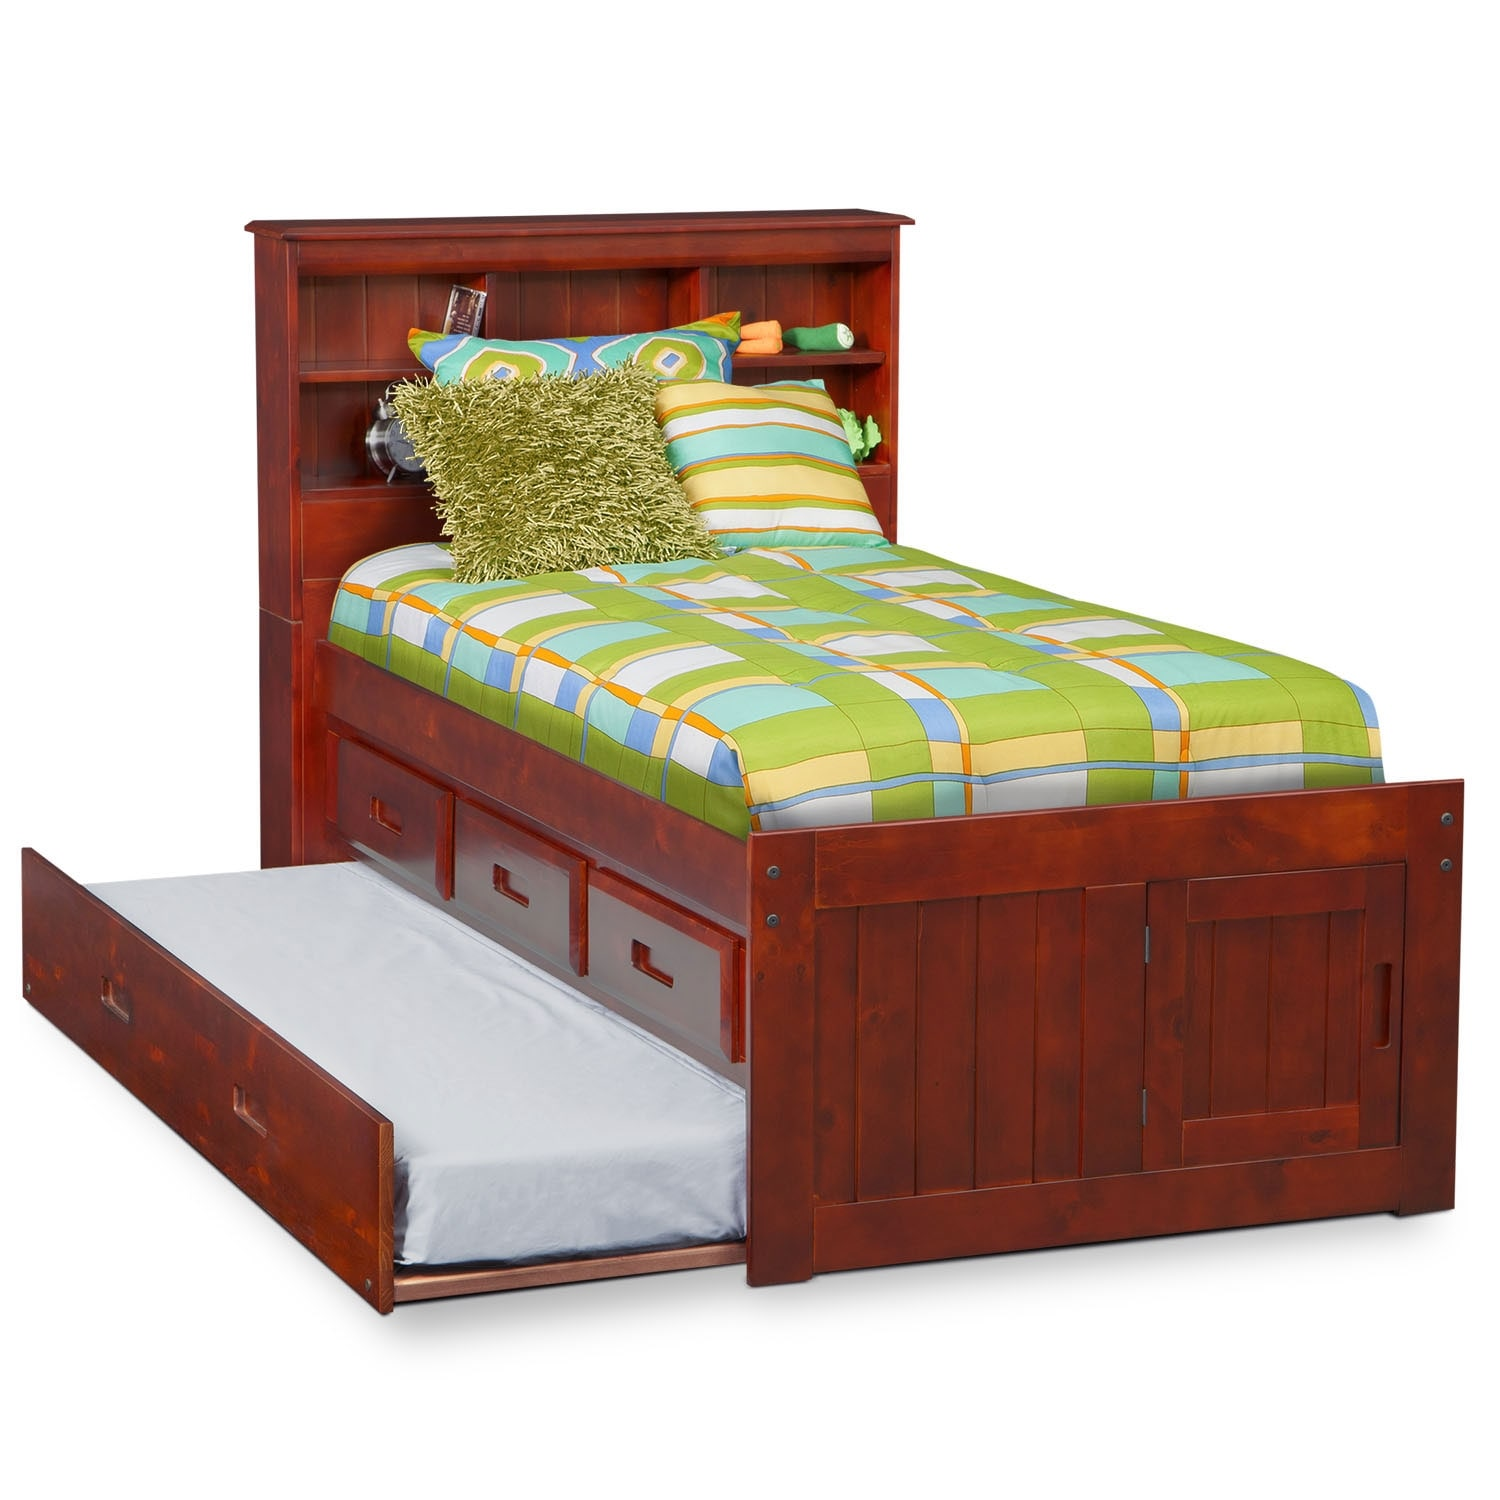 the bed photos storage digest architectural prettiest under out underbed gallery there drawers